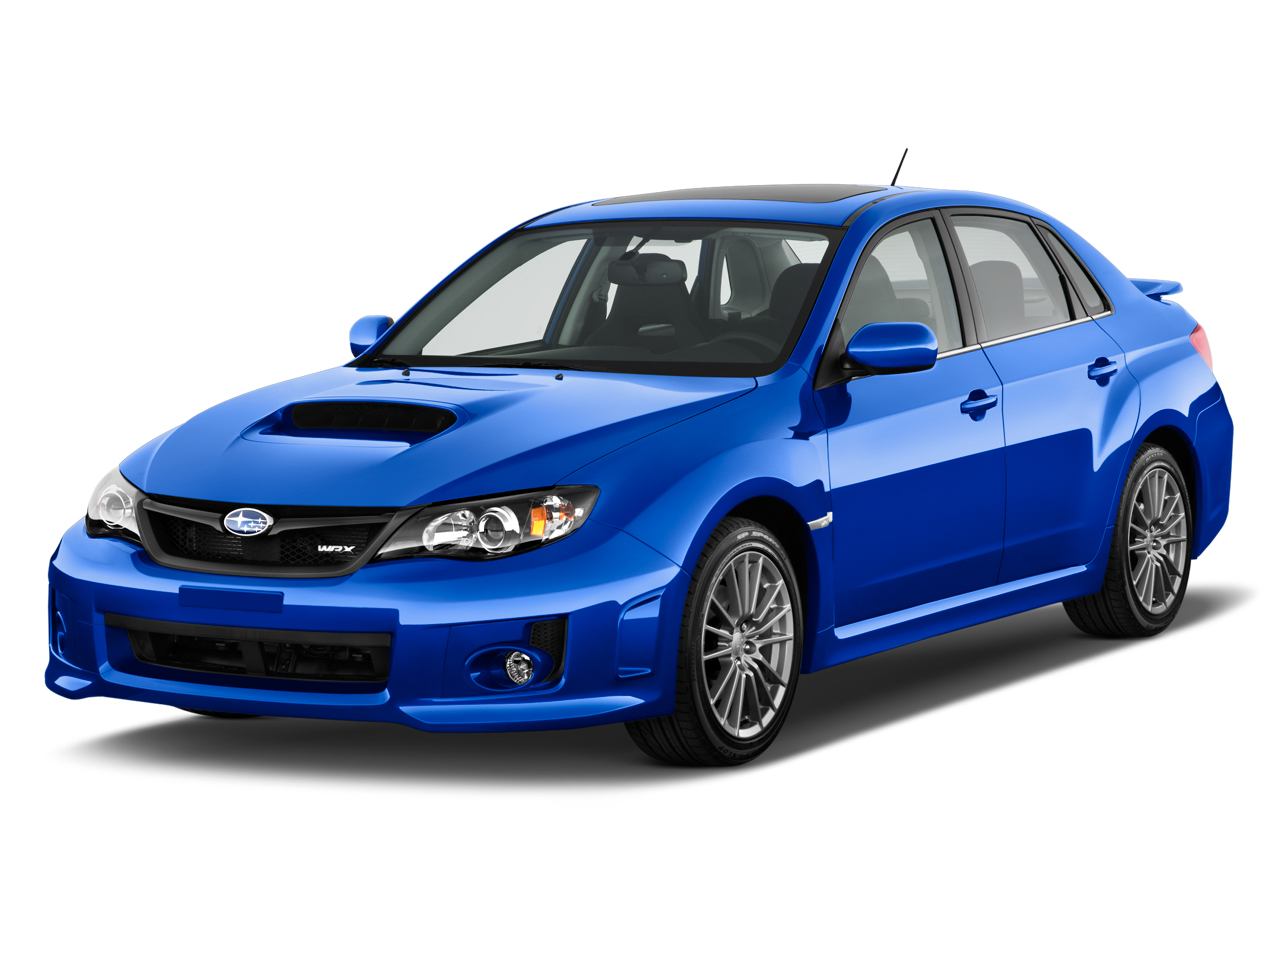 2011 Subaru Impreza Review Ratings Specs Prices And Photos The Car Connection